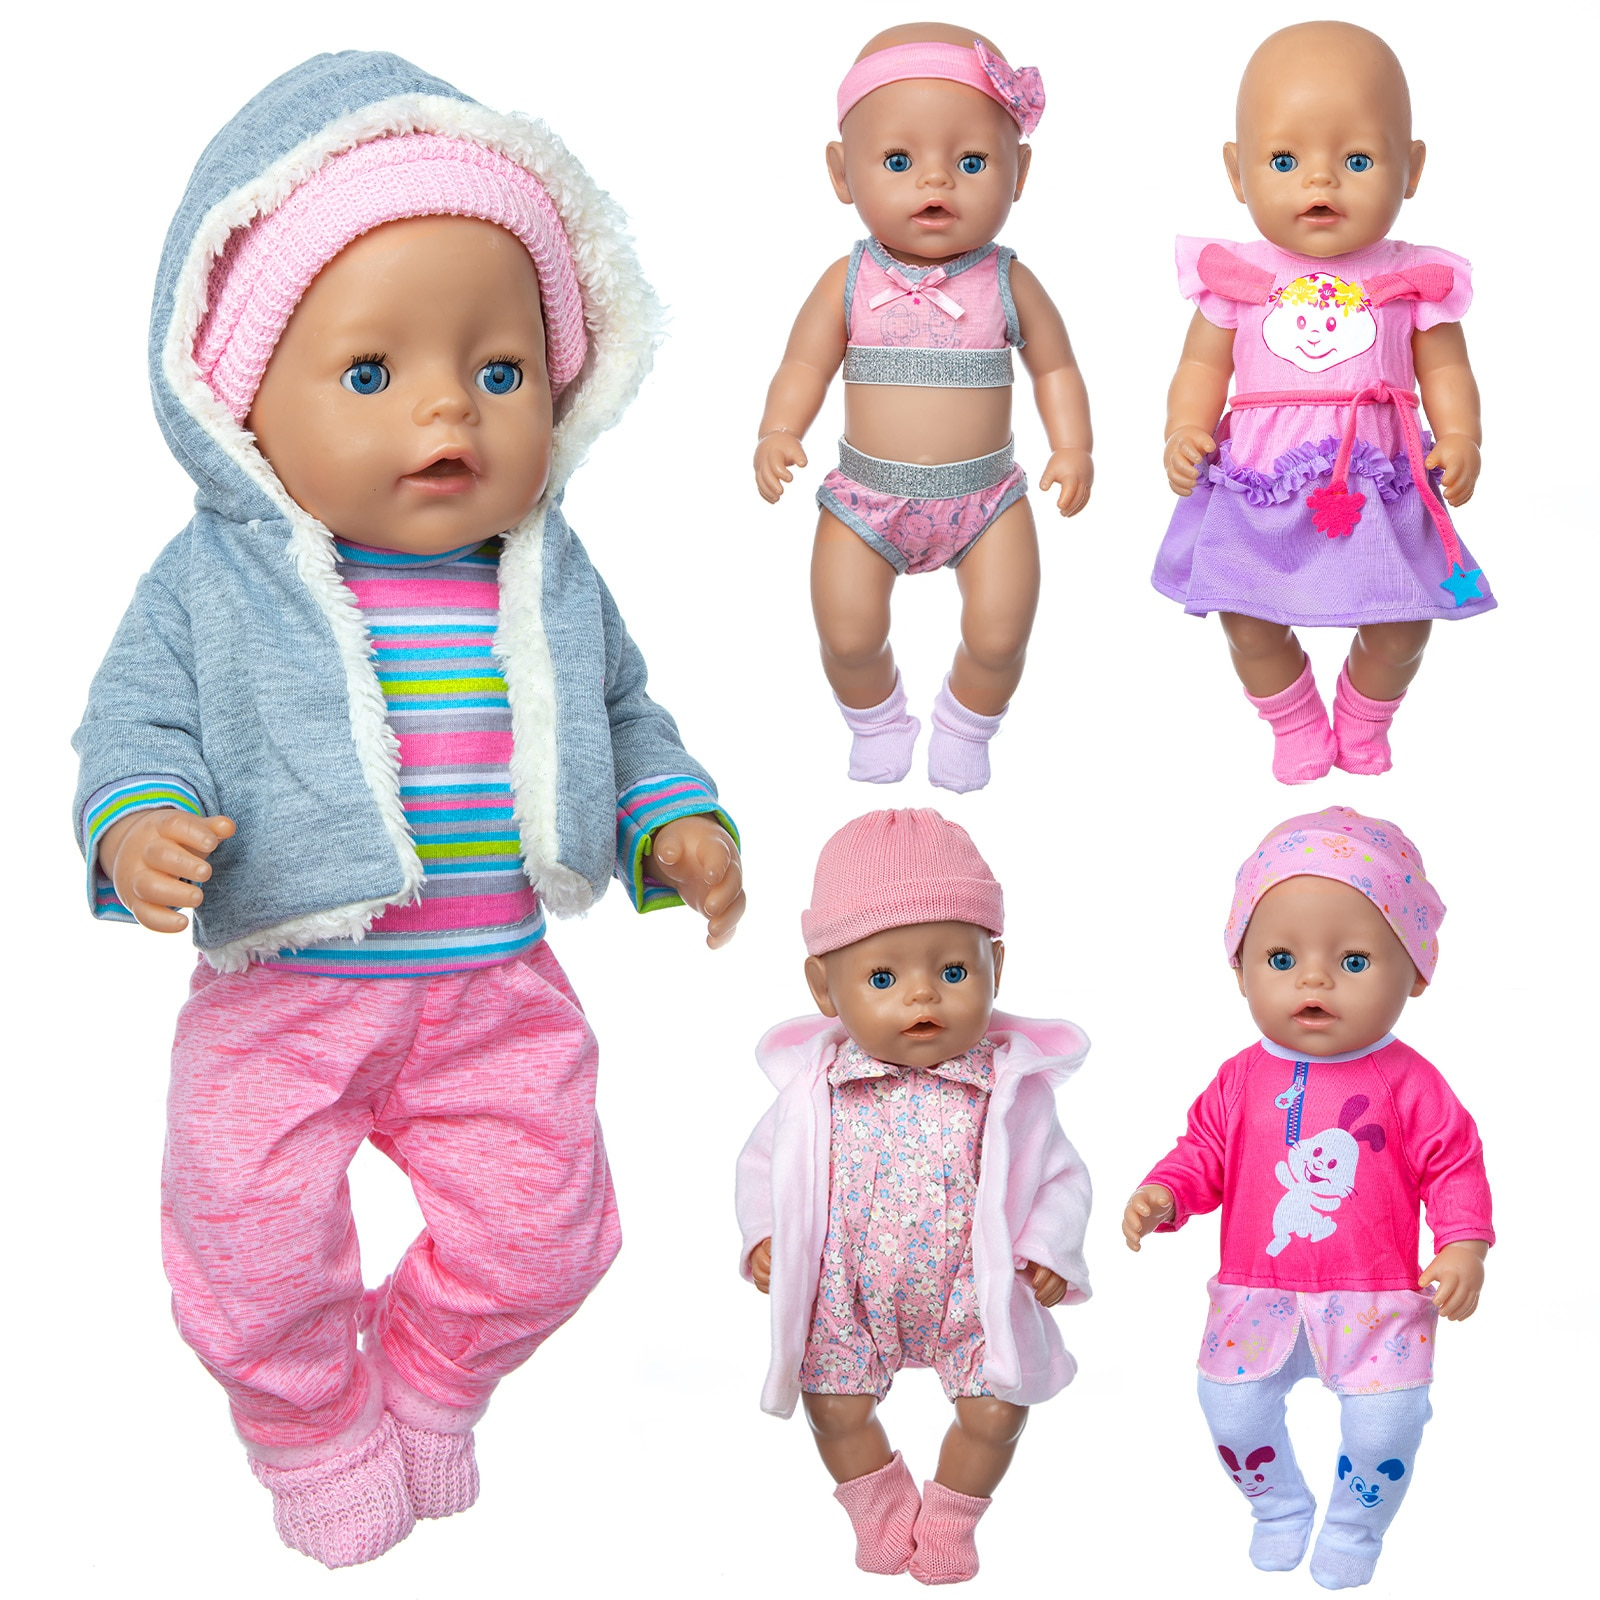 2020 Fit 18 inch Born New Baby Doll Clothes Accessories 43cm 4-piece Suit Rabbit Hair Band For Baby